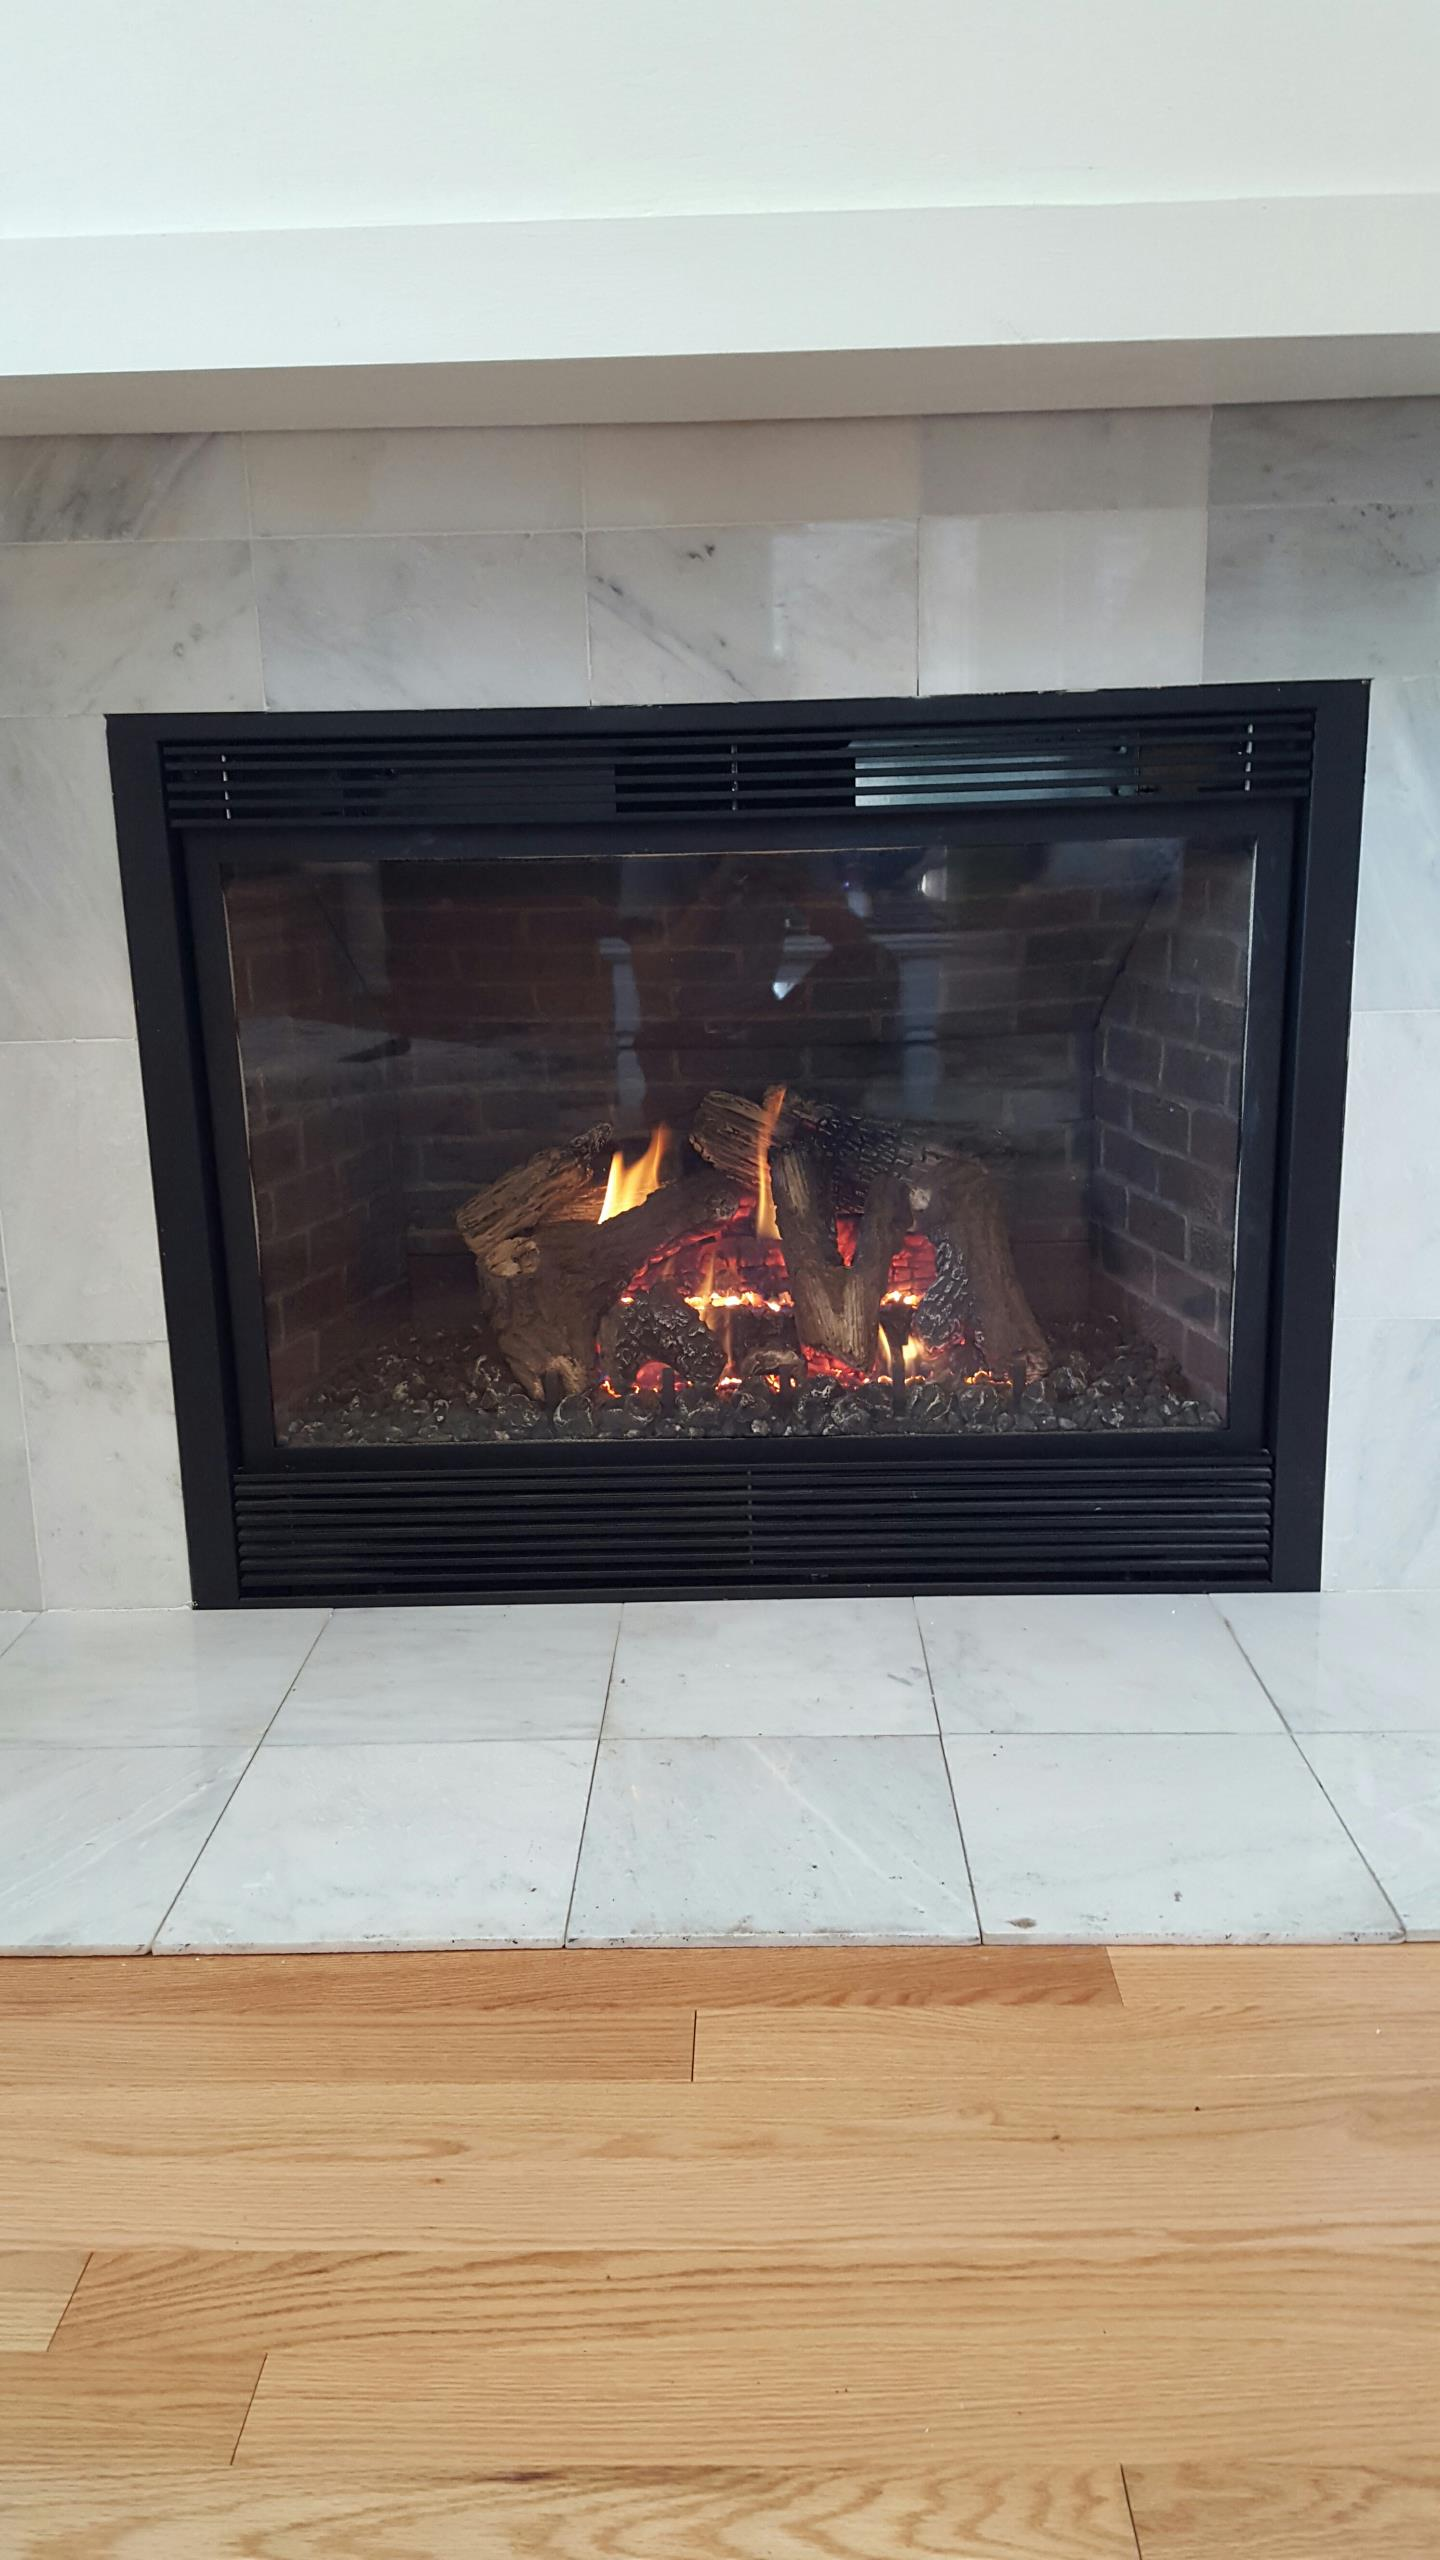 Fireplace Repair Nashville Tn Fireplace Repair Mendota Fireplace Repair